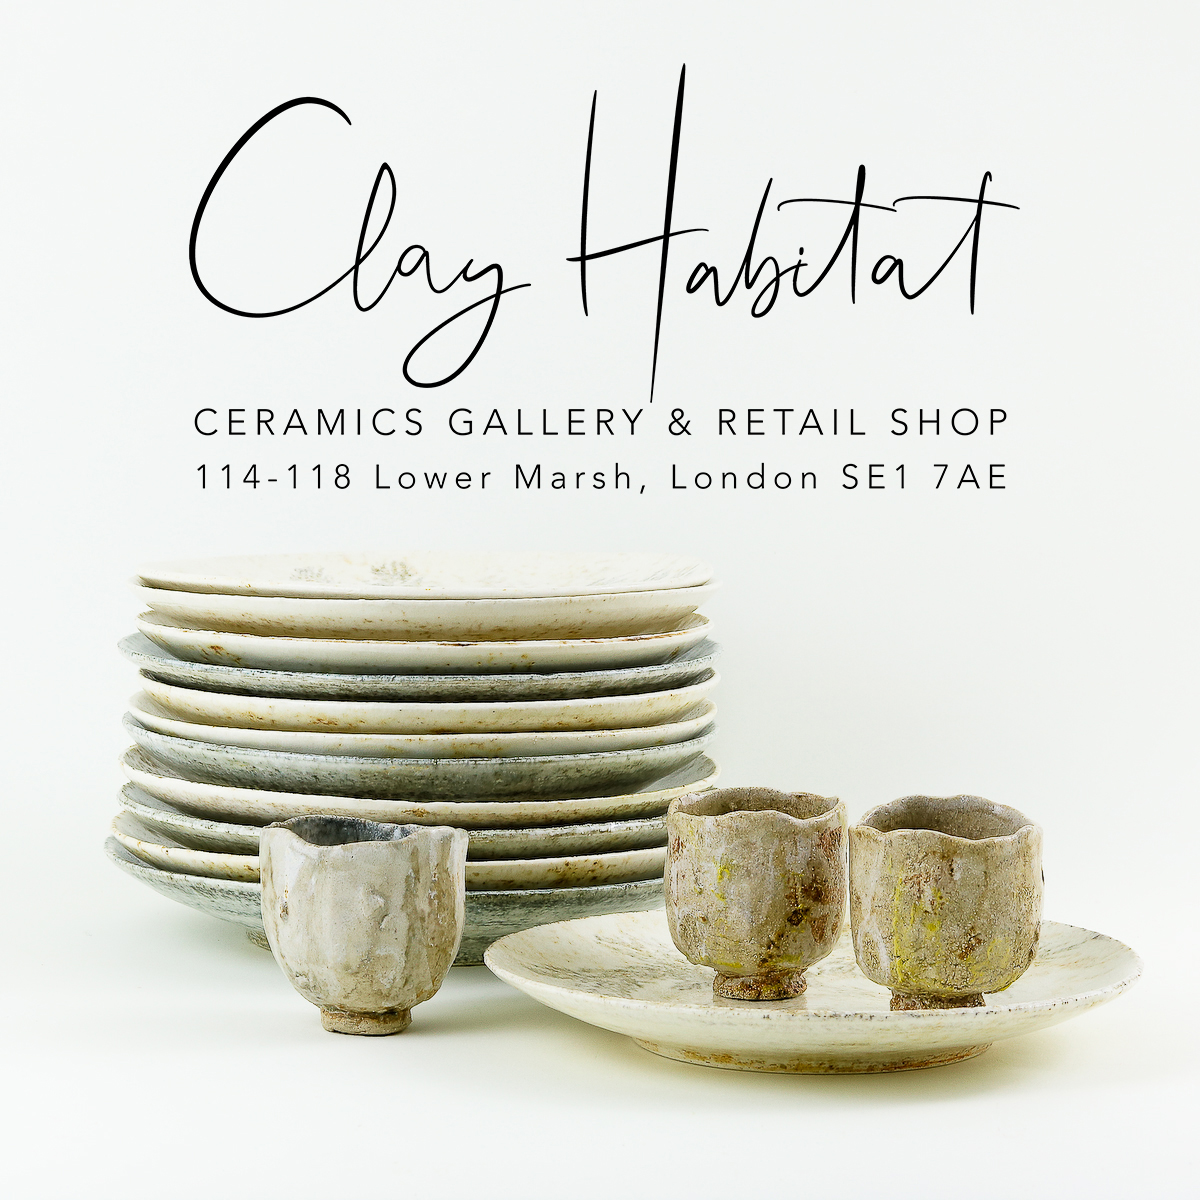 Clay Habitat ceramics gallery - I have now joined the other 12 resident ceramic artists at this lovely retail and gallery space just a stone's thrown from Waterloo station on Lower Marsh, and a selection of my work will be on display and available to buy until at least the end of February 2020. If you'd like to schedule a private viewing please contact me, otherwise do pop in any time Wednesday to Sunday.Clay Habitat, 114-118 Lower Marsh, London SE1 7AEMonday - Tuesday closedWednesday - Saturday 11-7, Sunday 11-3pm